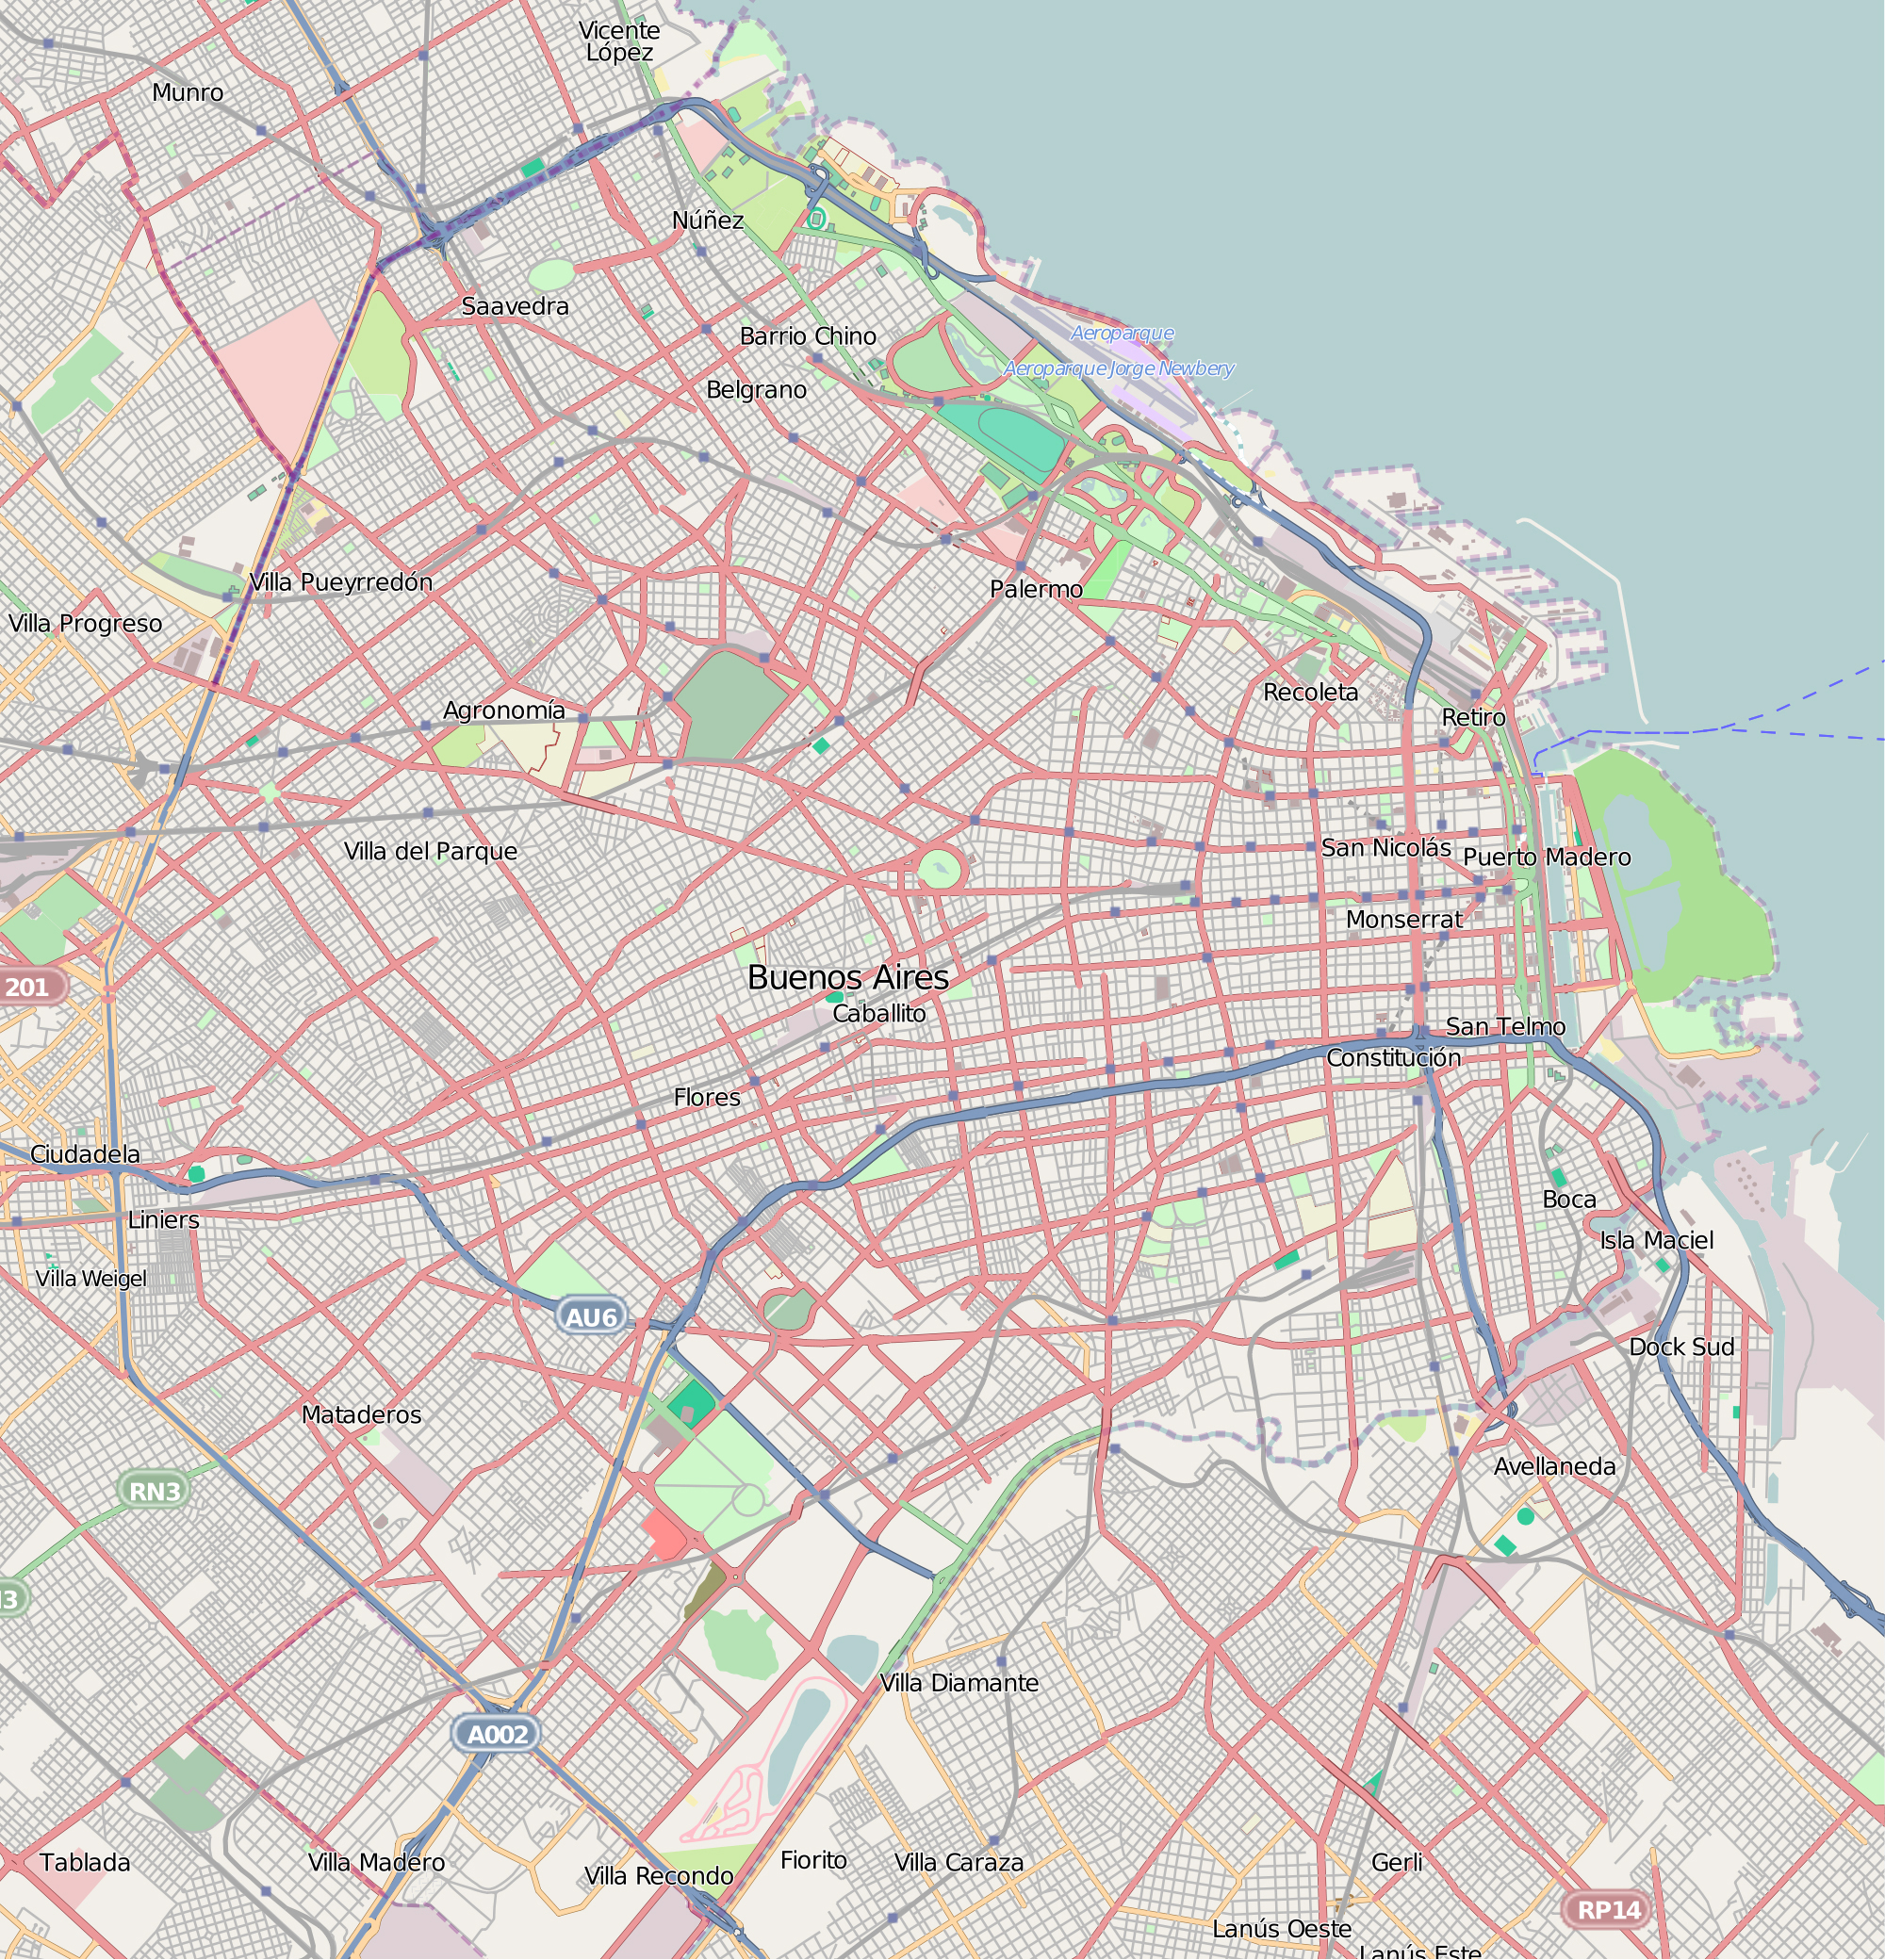 Detailed Road Map Of Buenos Aires Buenos Aires Argentina - Argentina map detailed